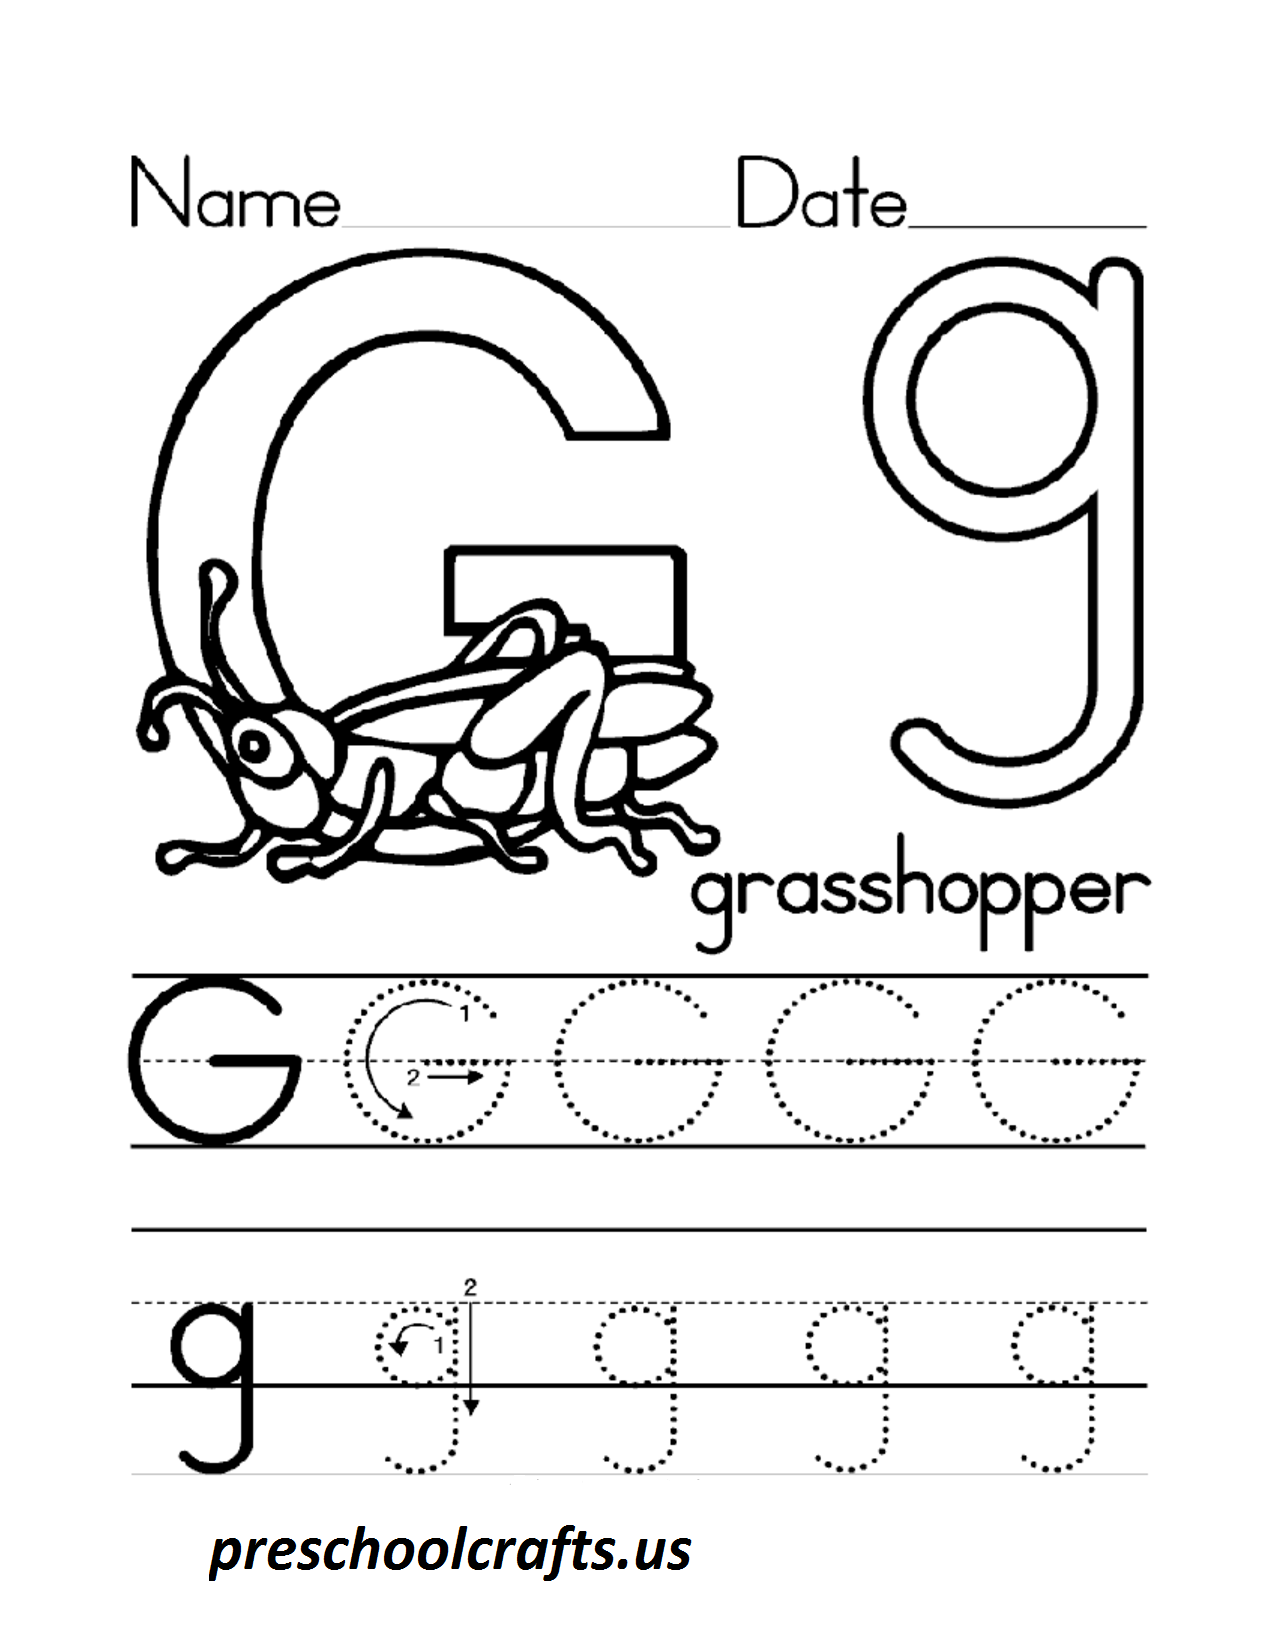 Free Worksheet Letter G Worksheets letter g worksheets for preschoolers laveyla com preschool crafts